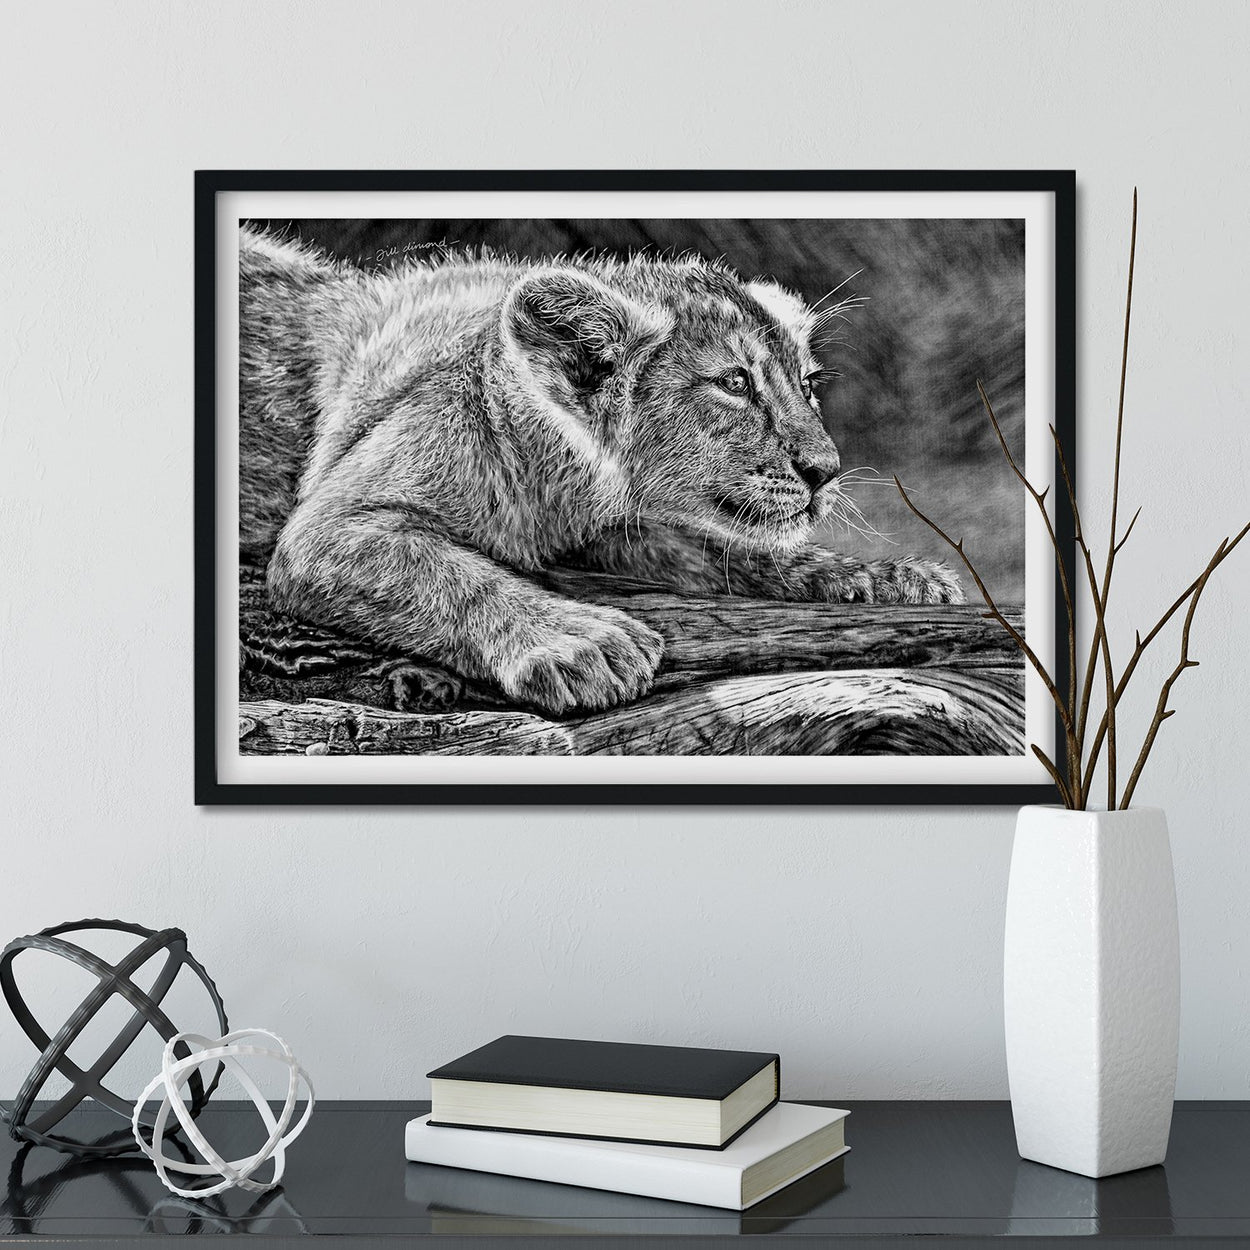 Lion Cub Wall Art Framed - The Thriving Wild